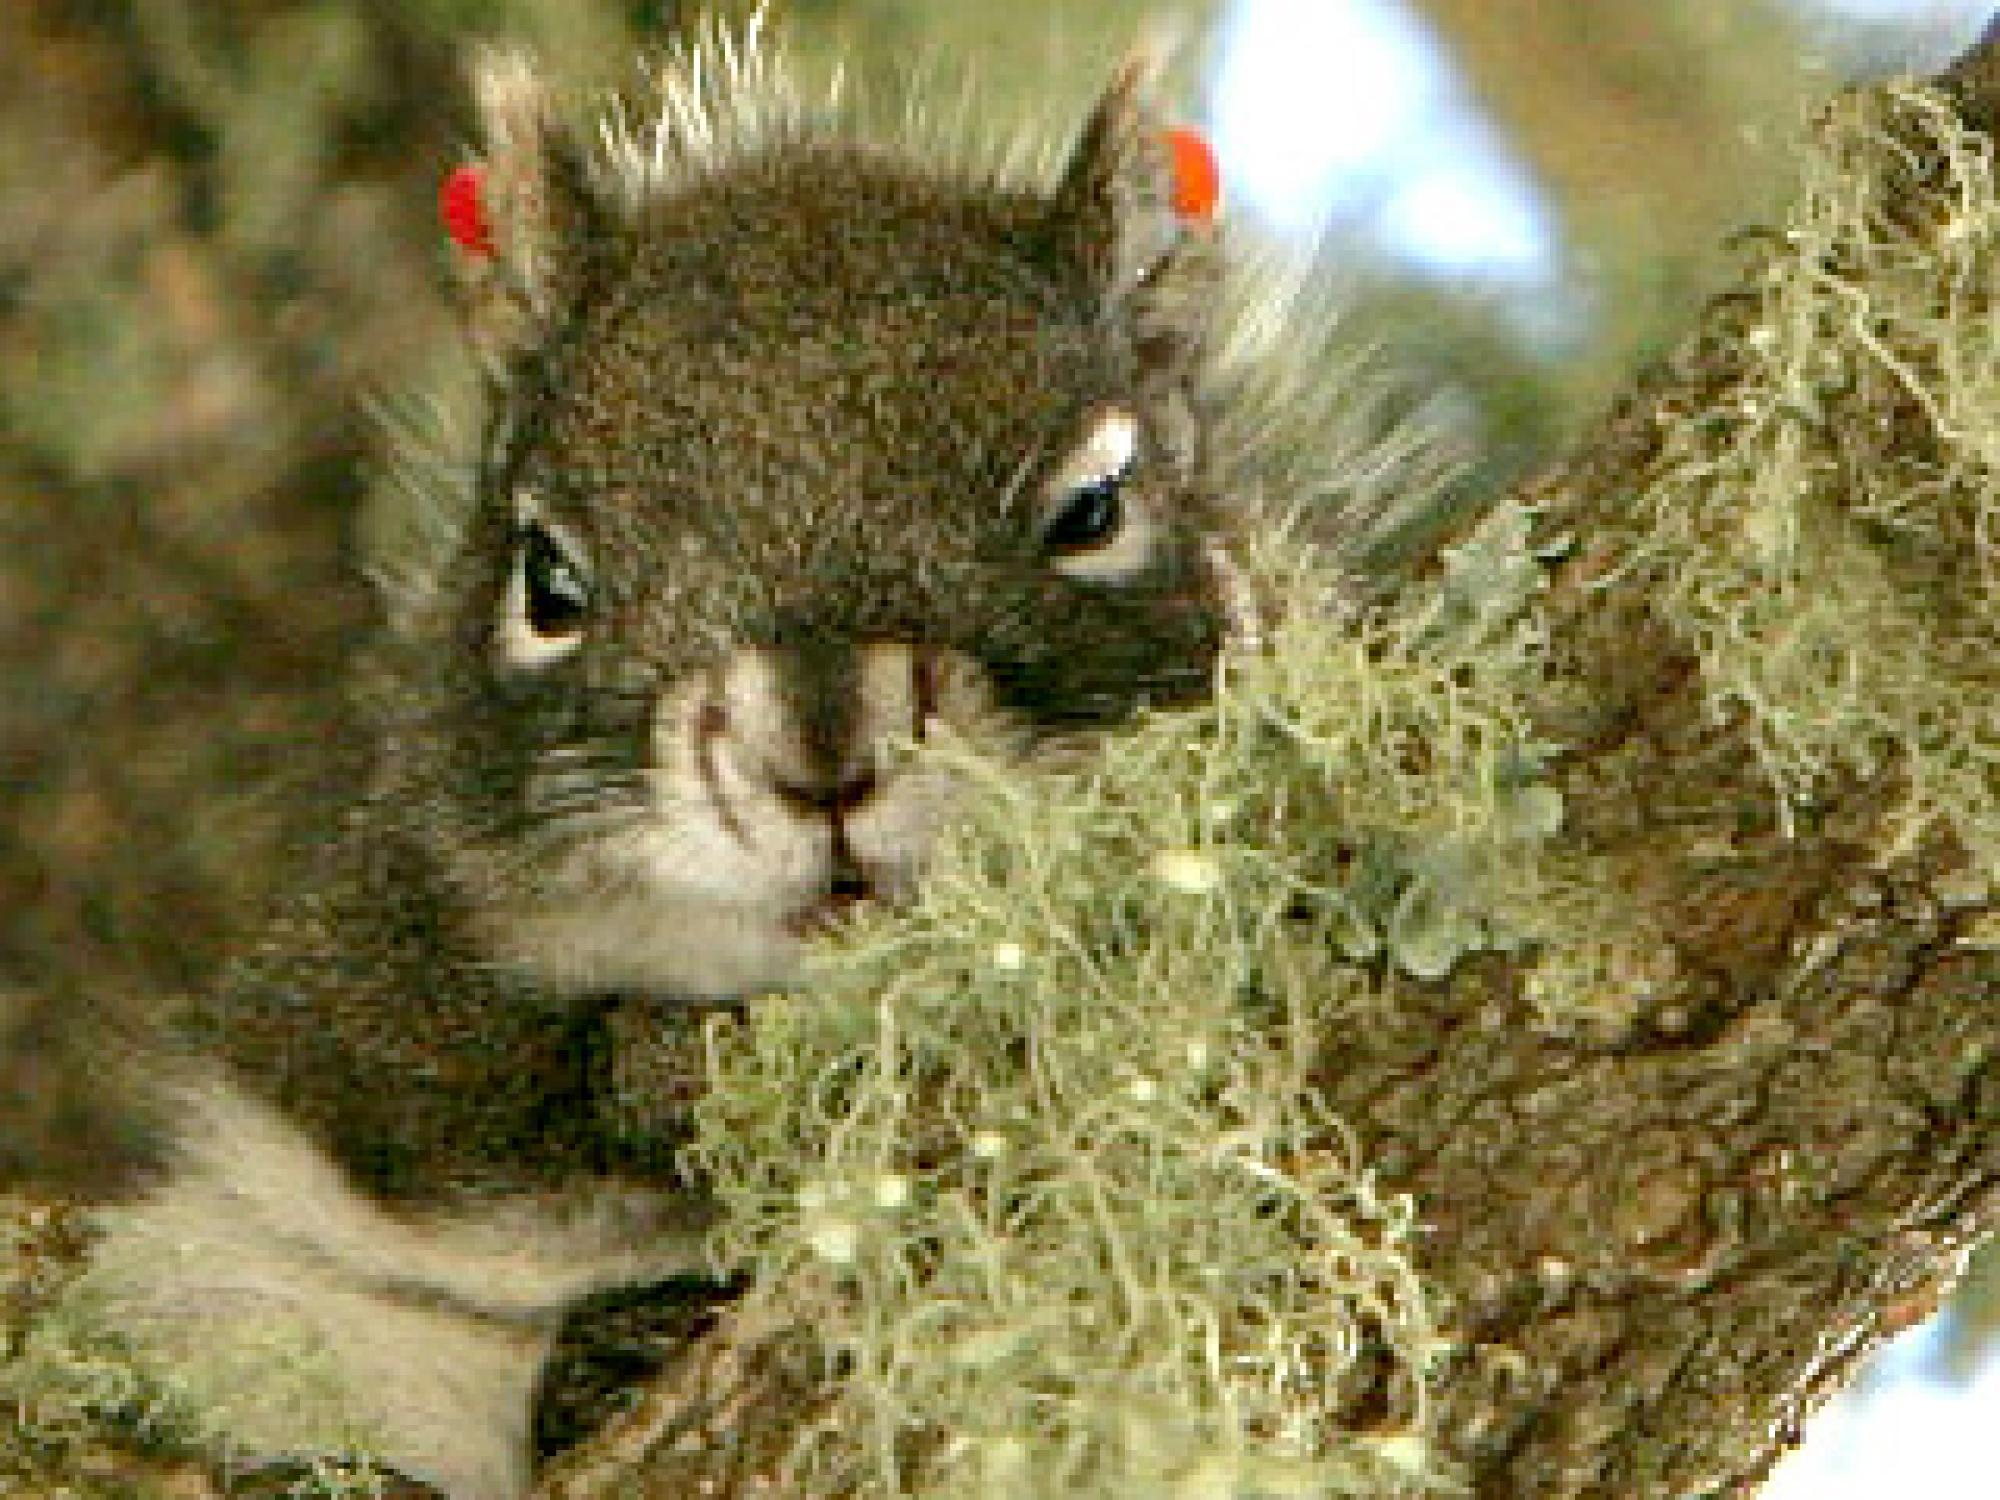 High-tech computer modeling may help rescue the Mount Graham Red Squirrel from extinction.